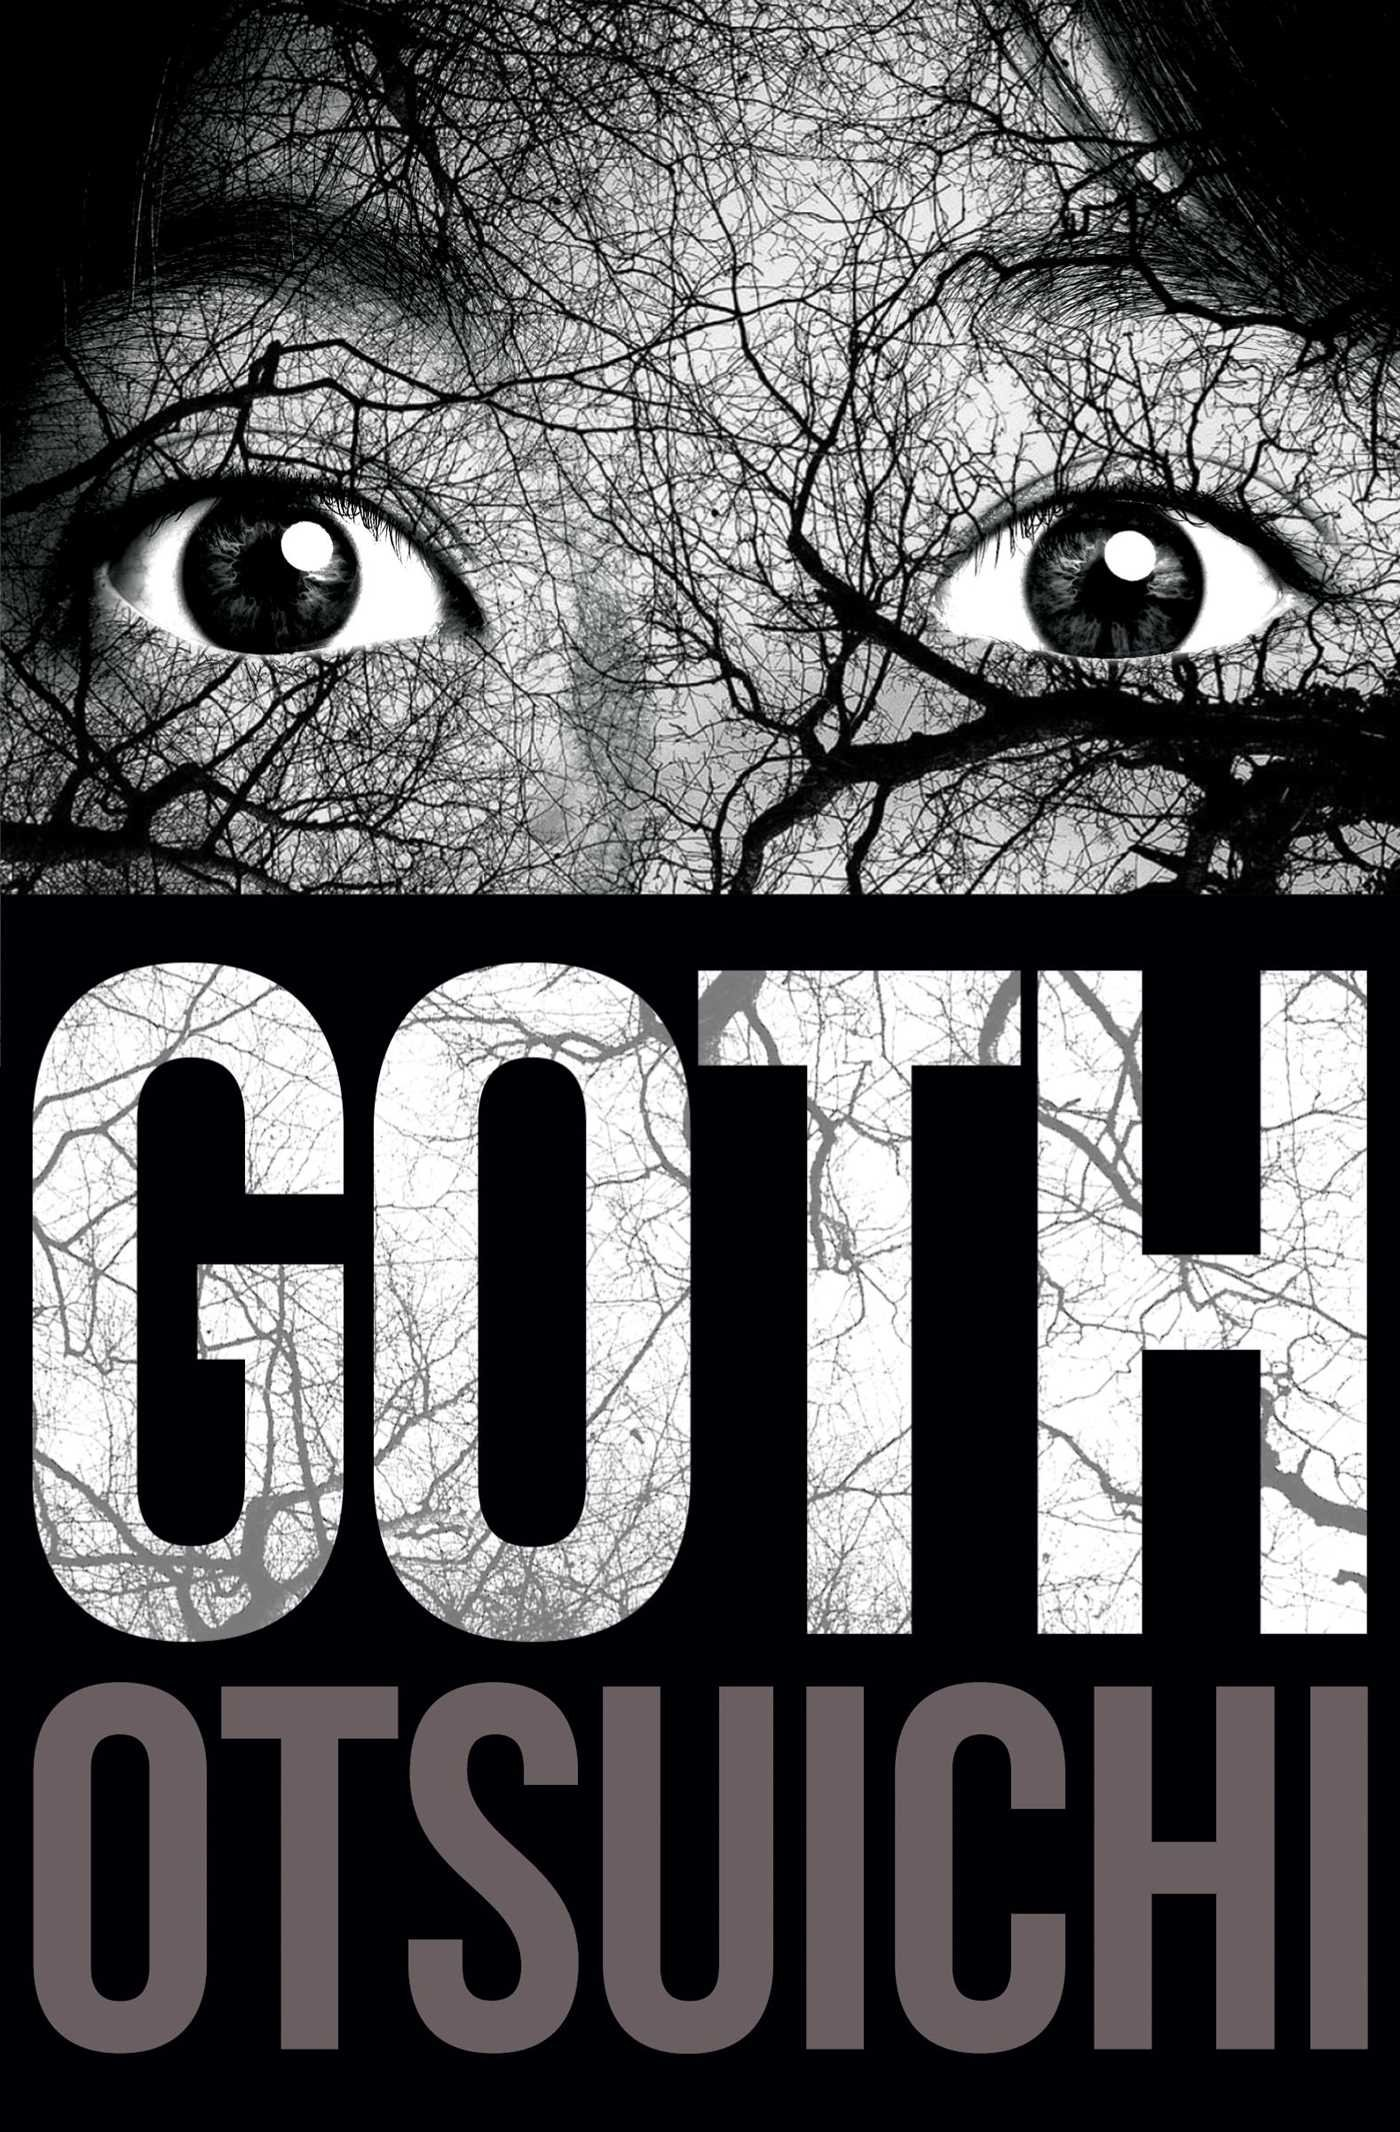 english on gothic stories The 10 best gothic films the 10 best gothic films share on facebook  which some enthusiasts regard as more stylish than its english-language counterpart.